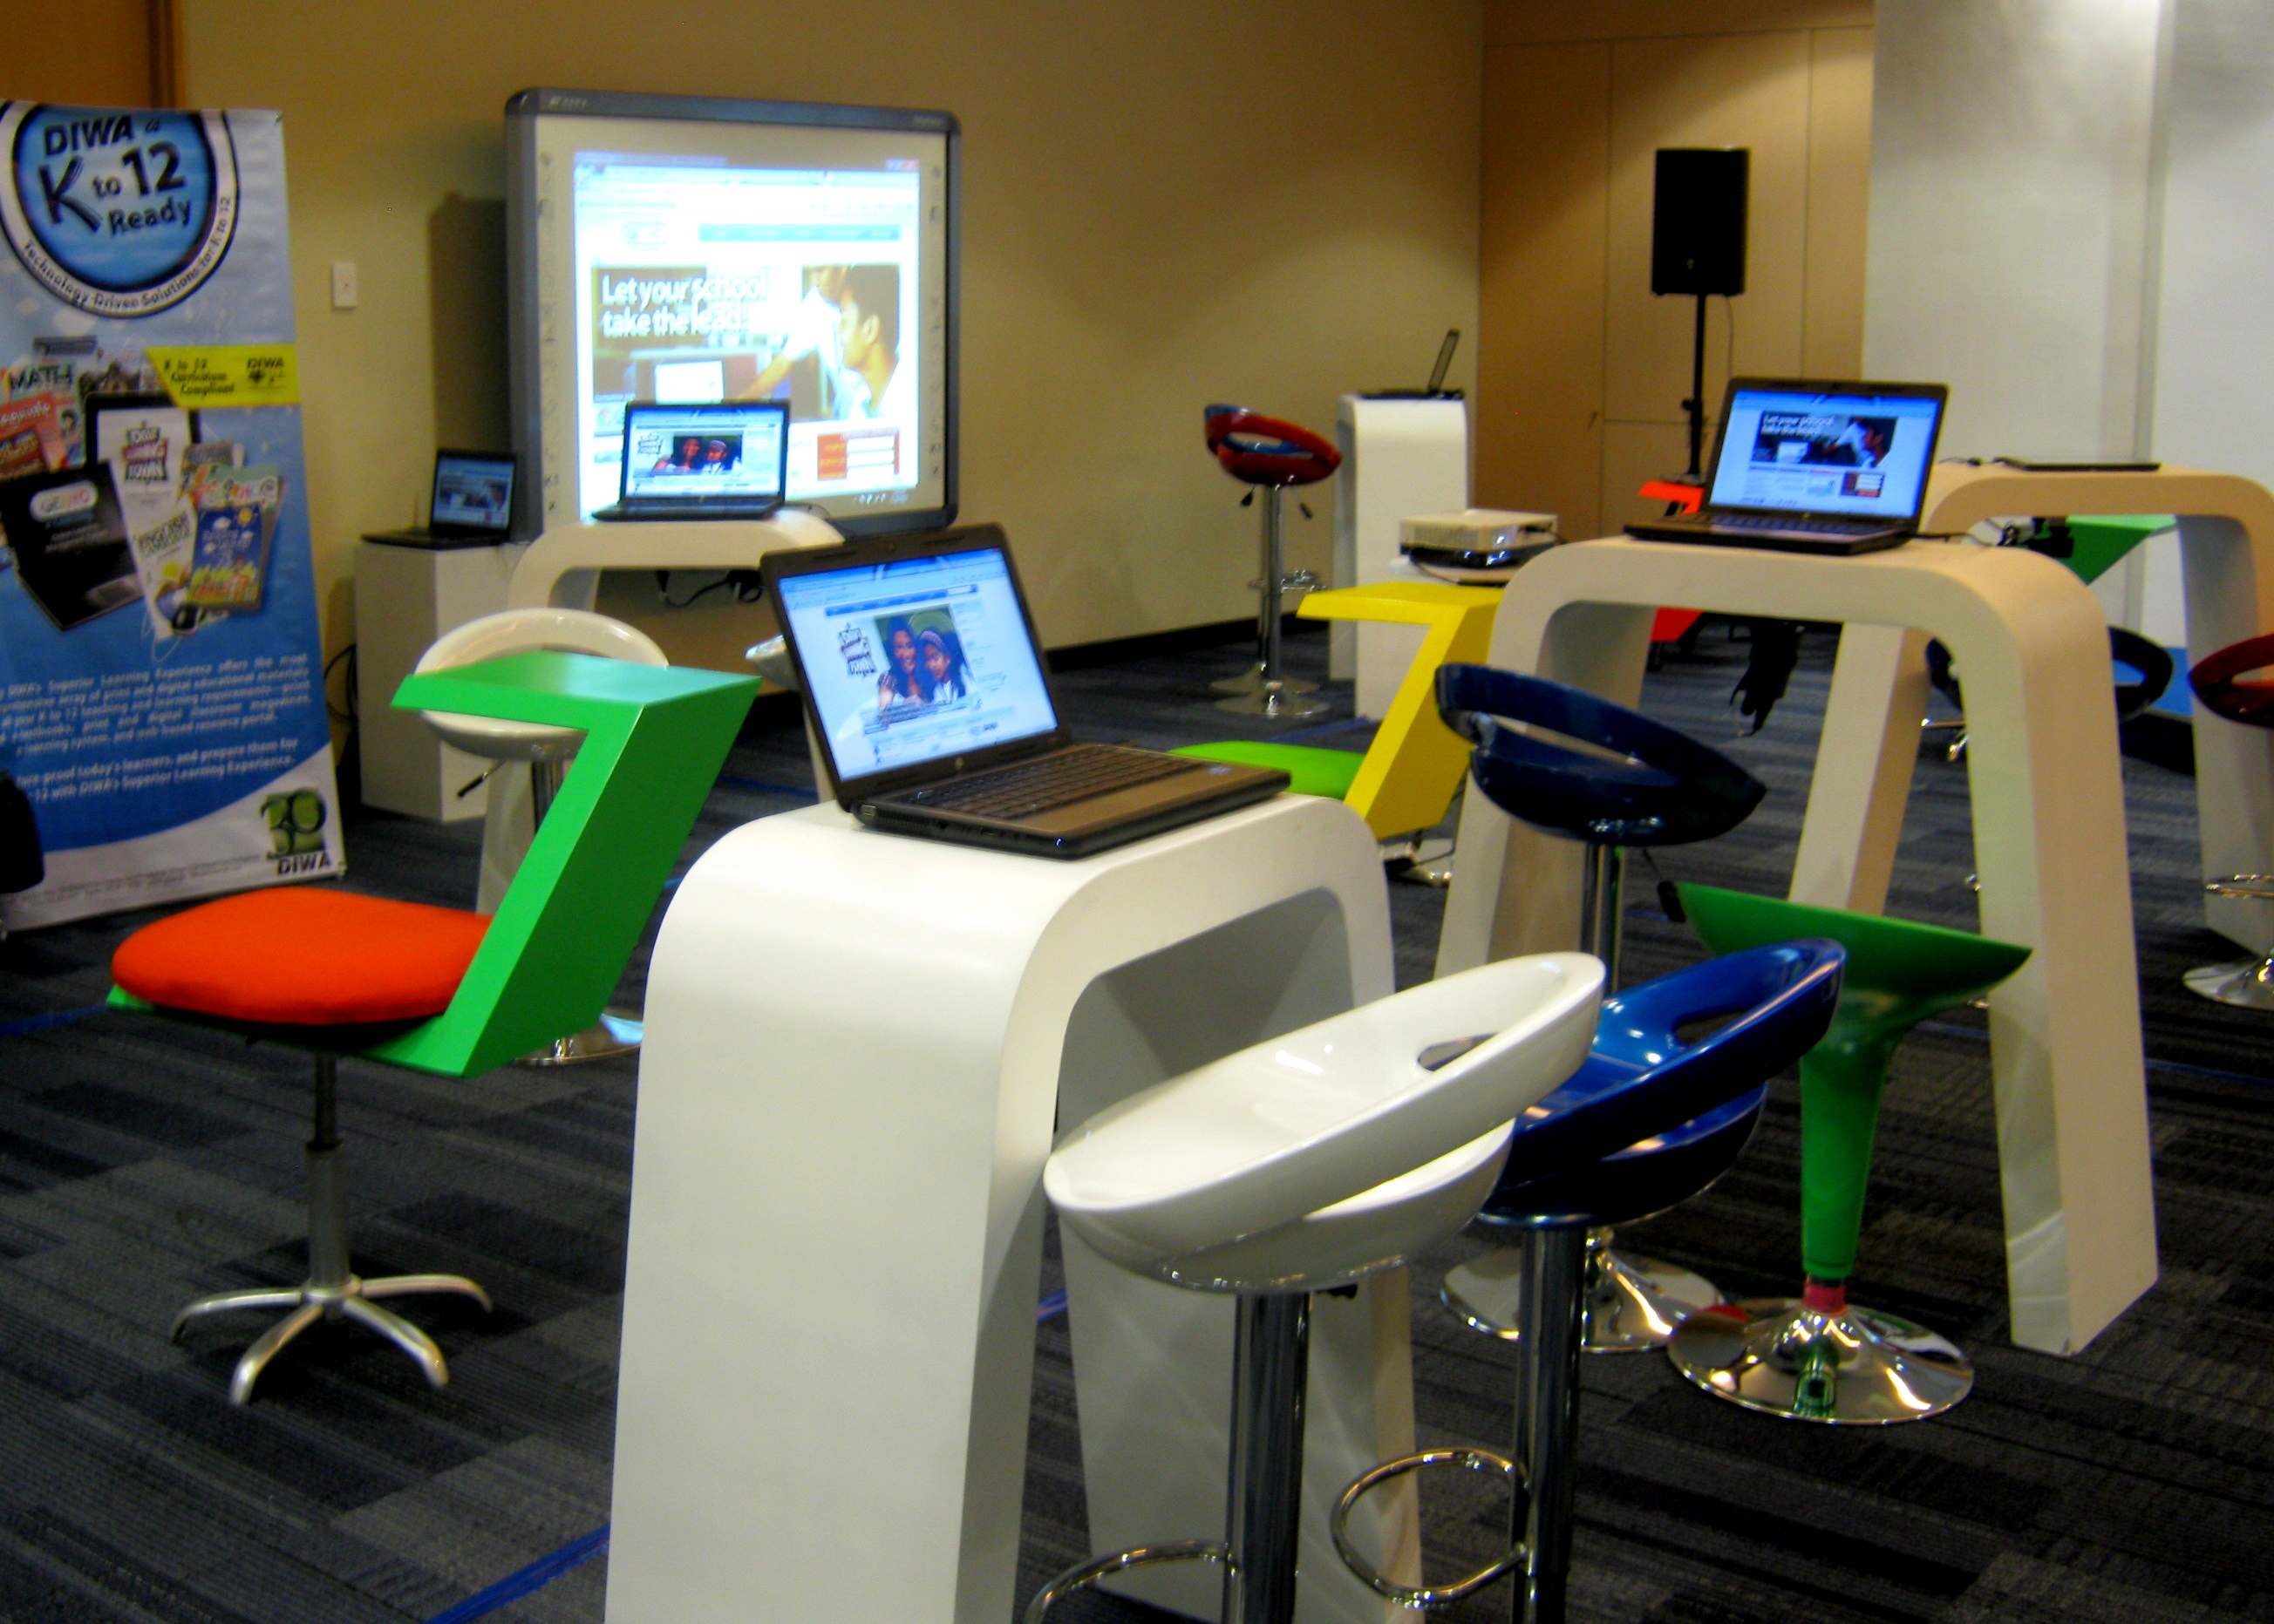 Innovative Ideas For Classroom Teaching ~ Diwa learning systems previews classroom of the future